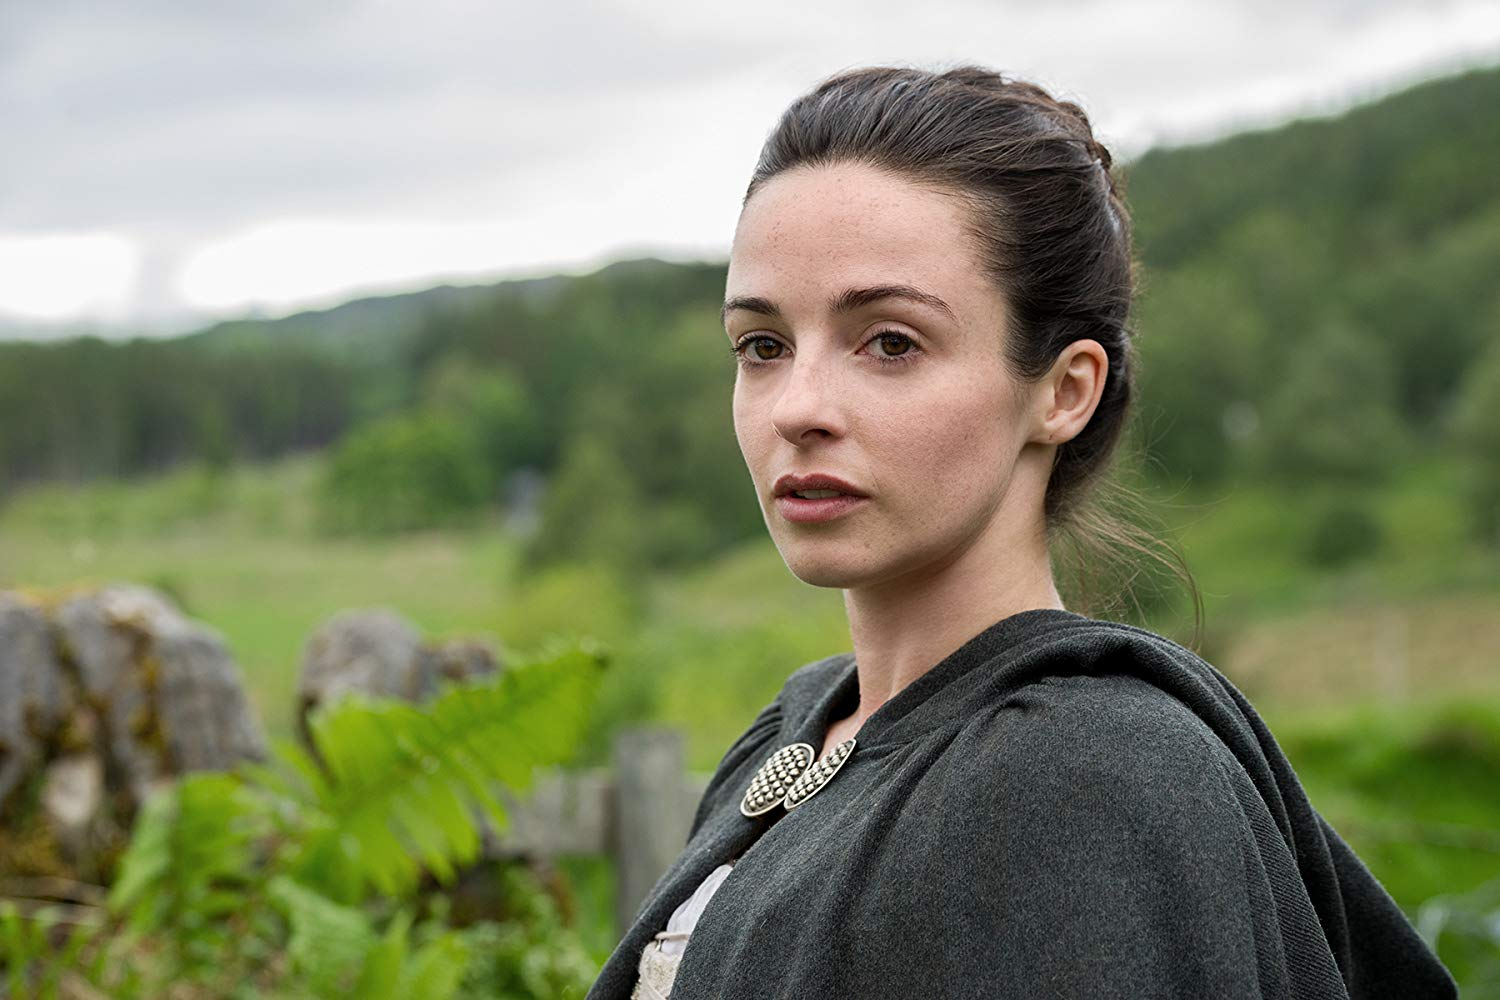 Joss Whedon Casts Laura Donnelly For The Lead In His HBO Series The Nevers